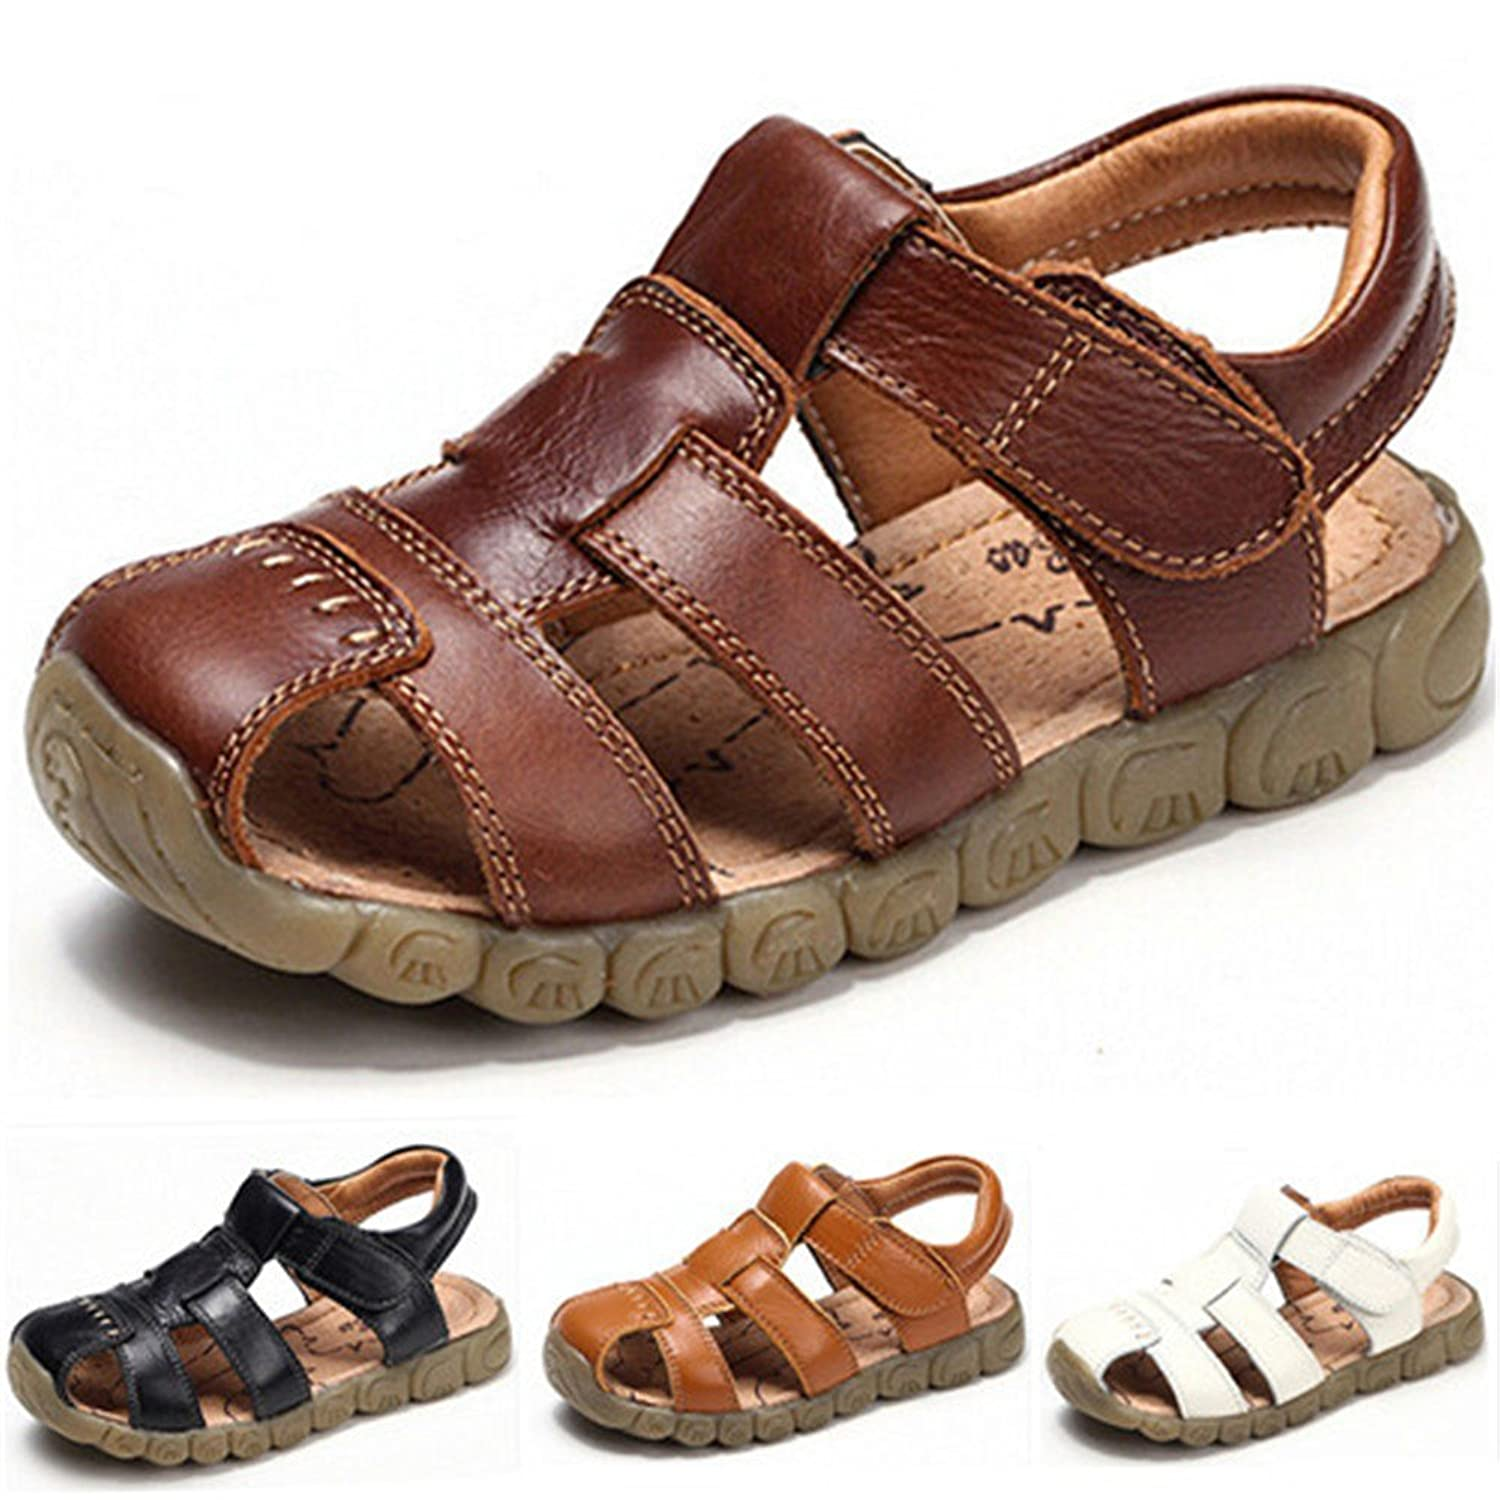 6c5019487c76e DZRZVD Baby Boy Girl Fisherman Leather Closed-Toe Sandal Beach Flat Shoes ( Toddler